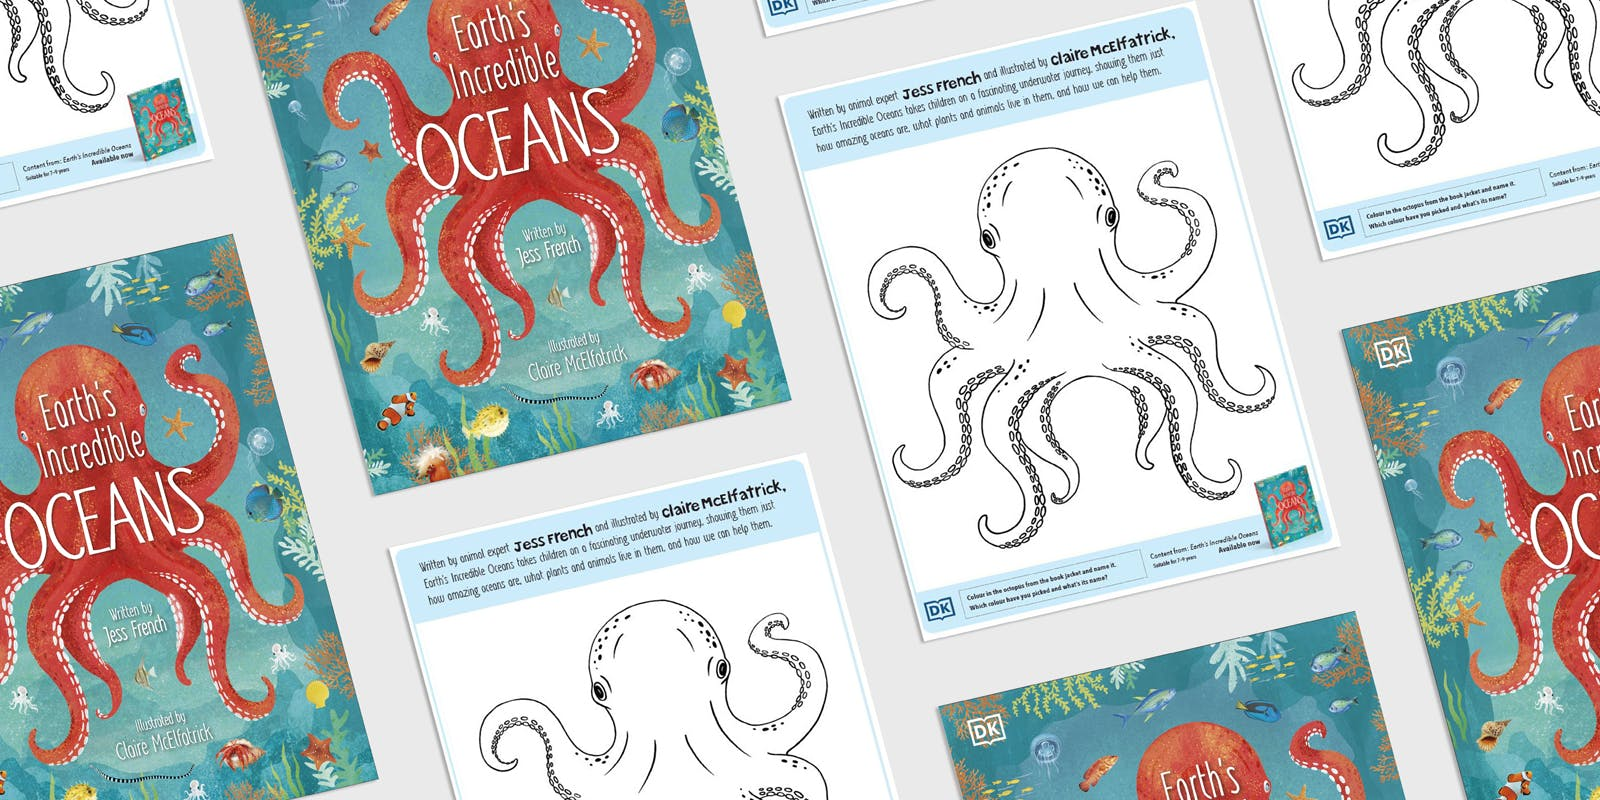 Earth's Incredible Oceans colouring sheet